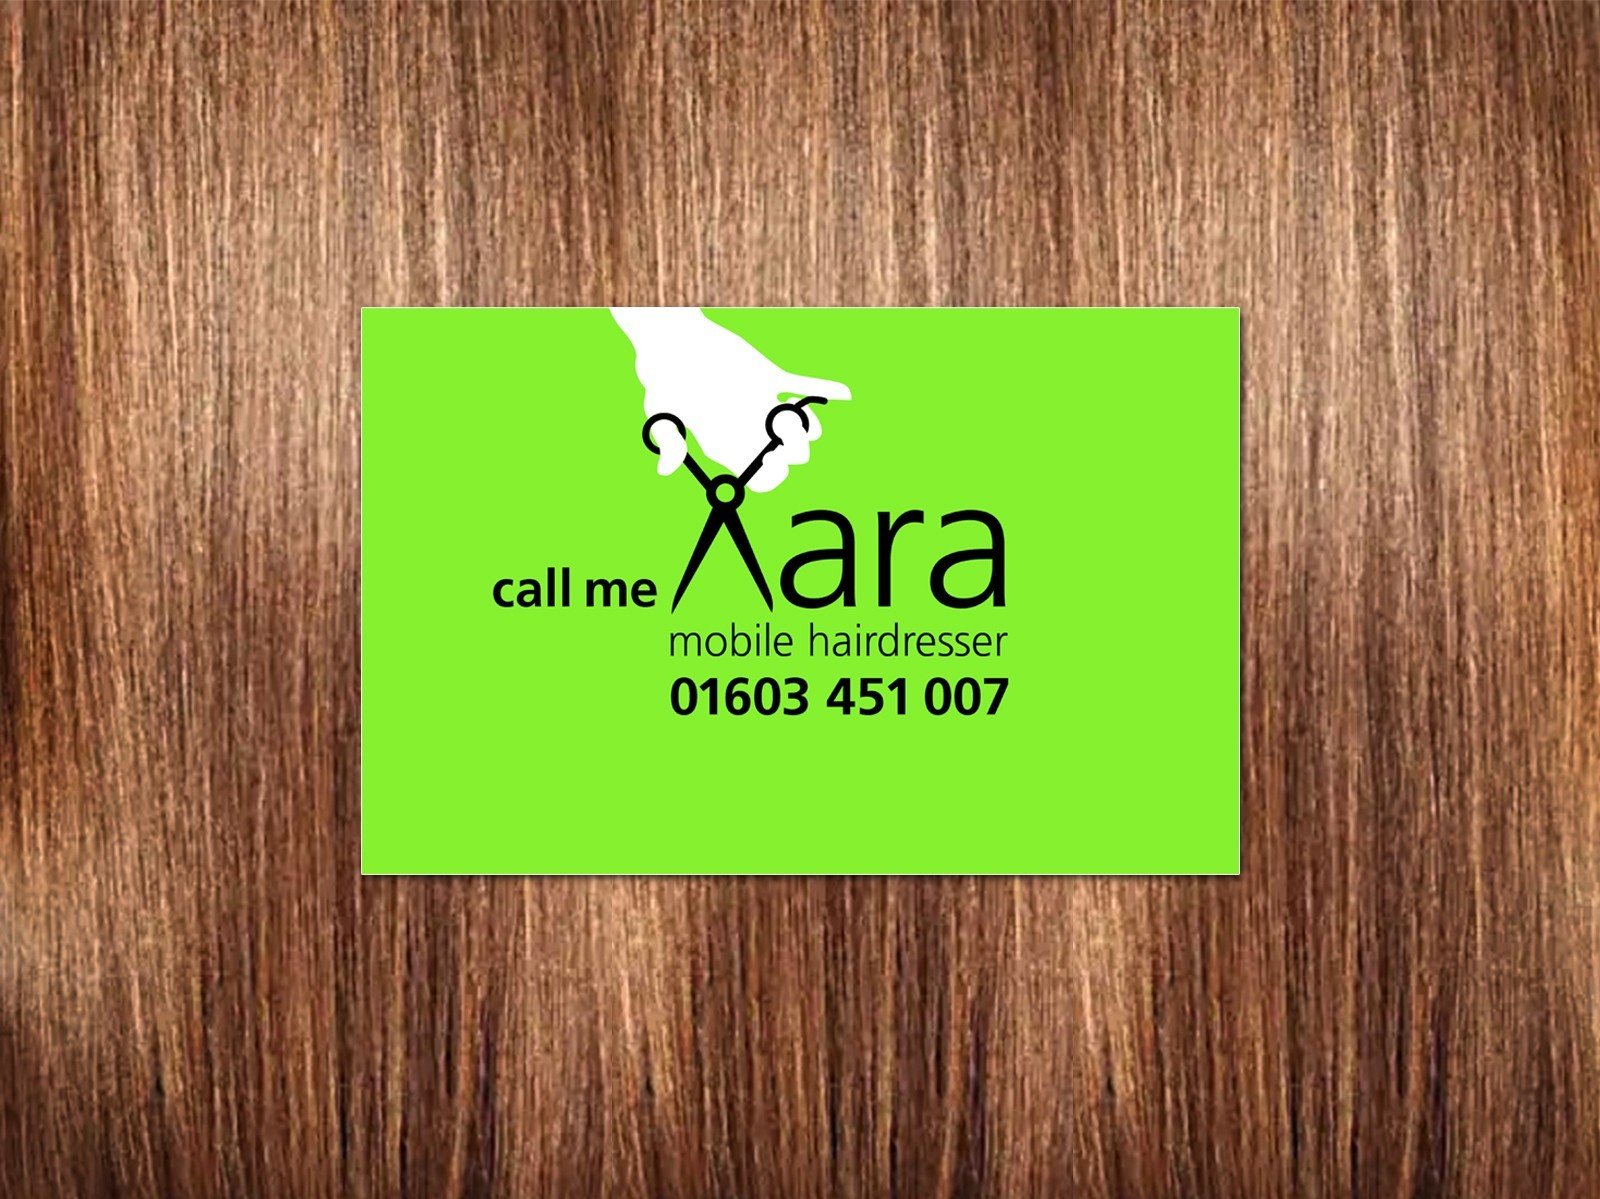 New Identity Design for a local hairdresser